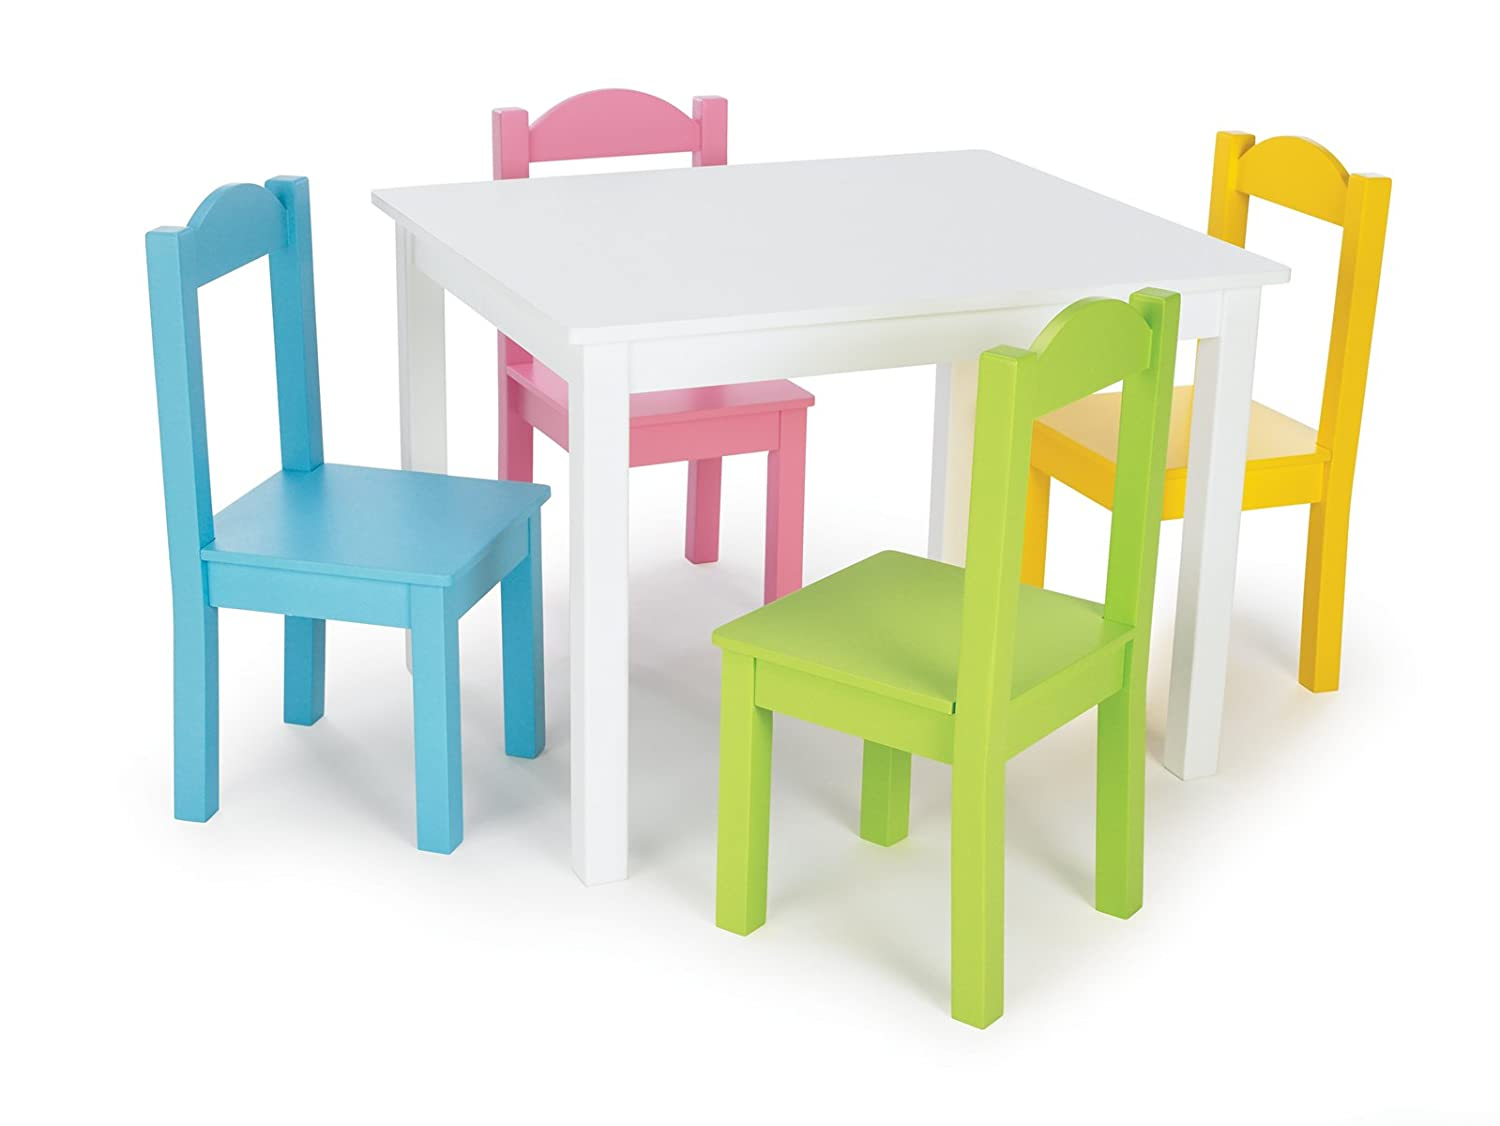 Kids Wooden Table And Chairs Kids Wooden Table And Chairs Homelingo